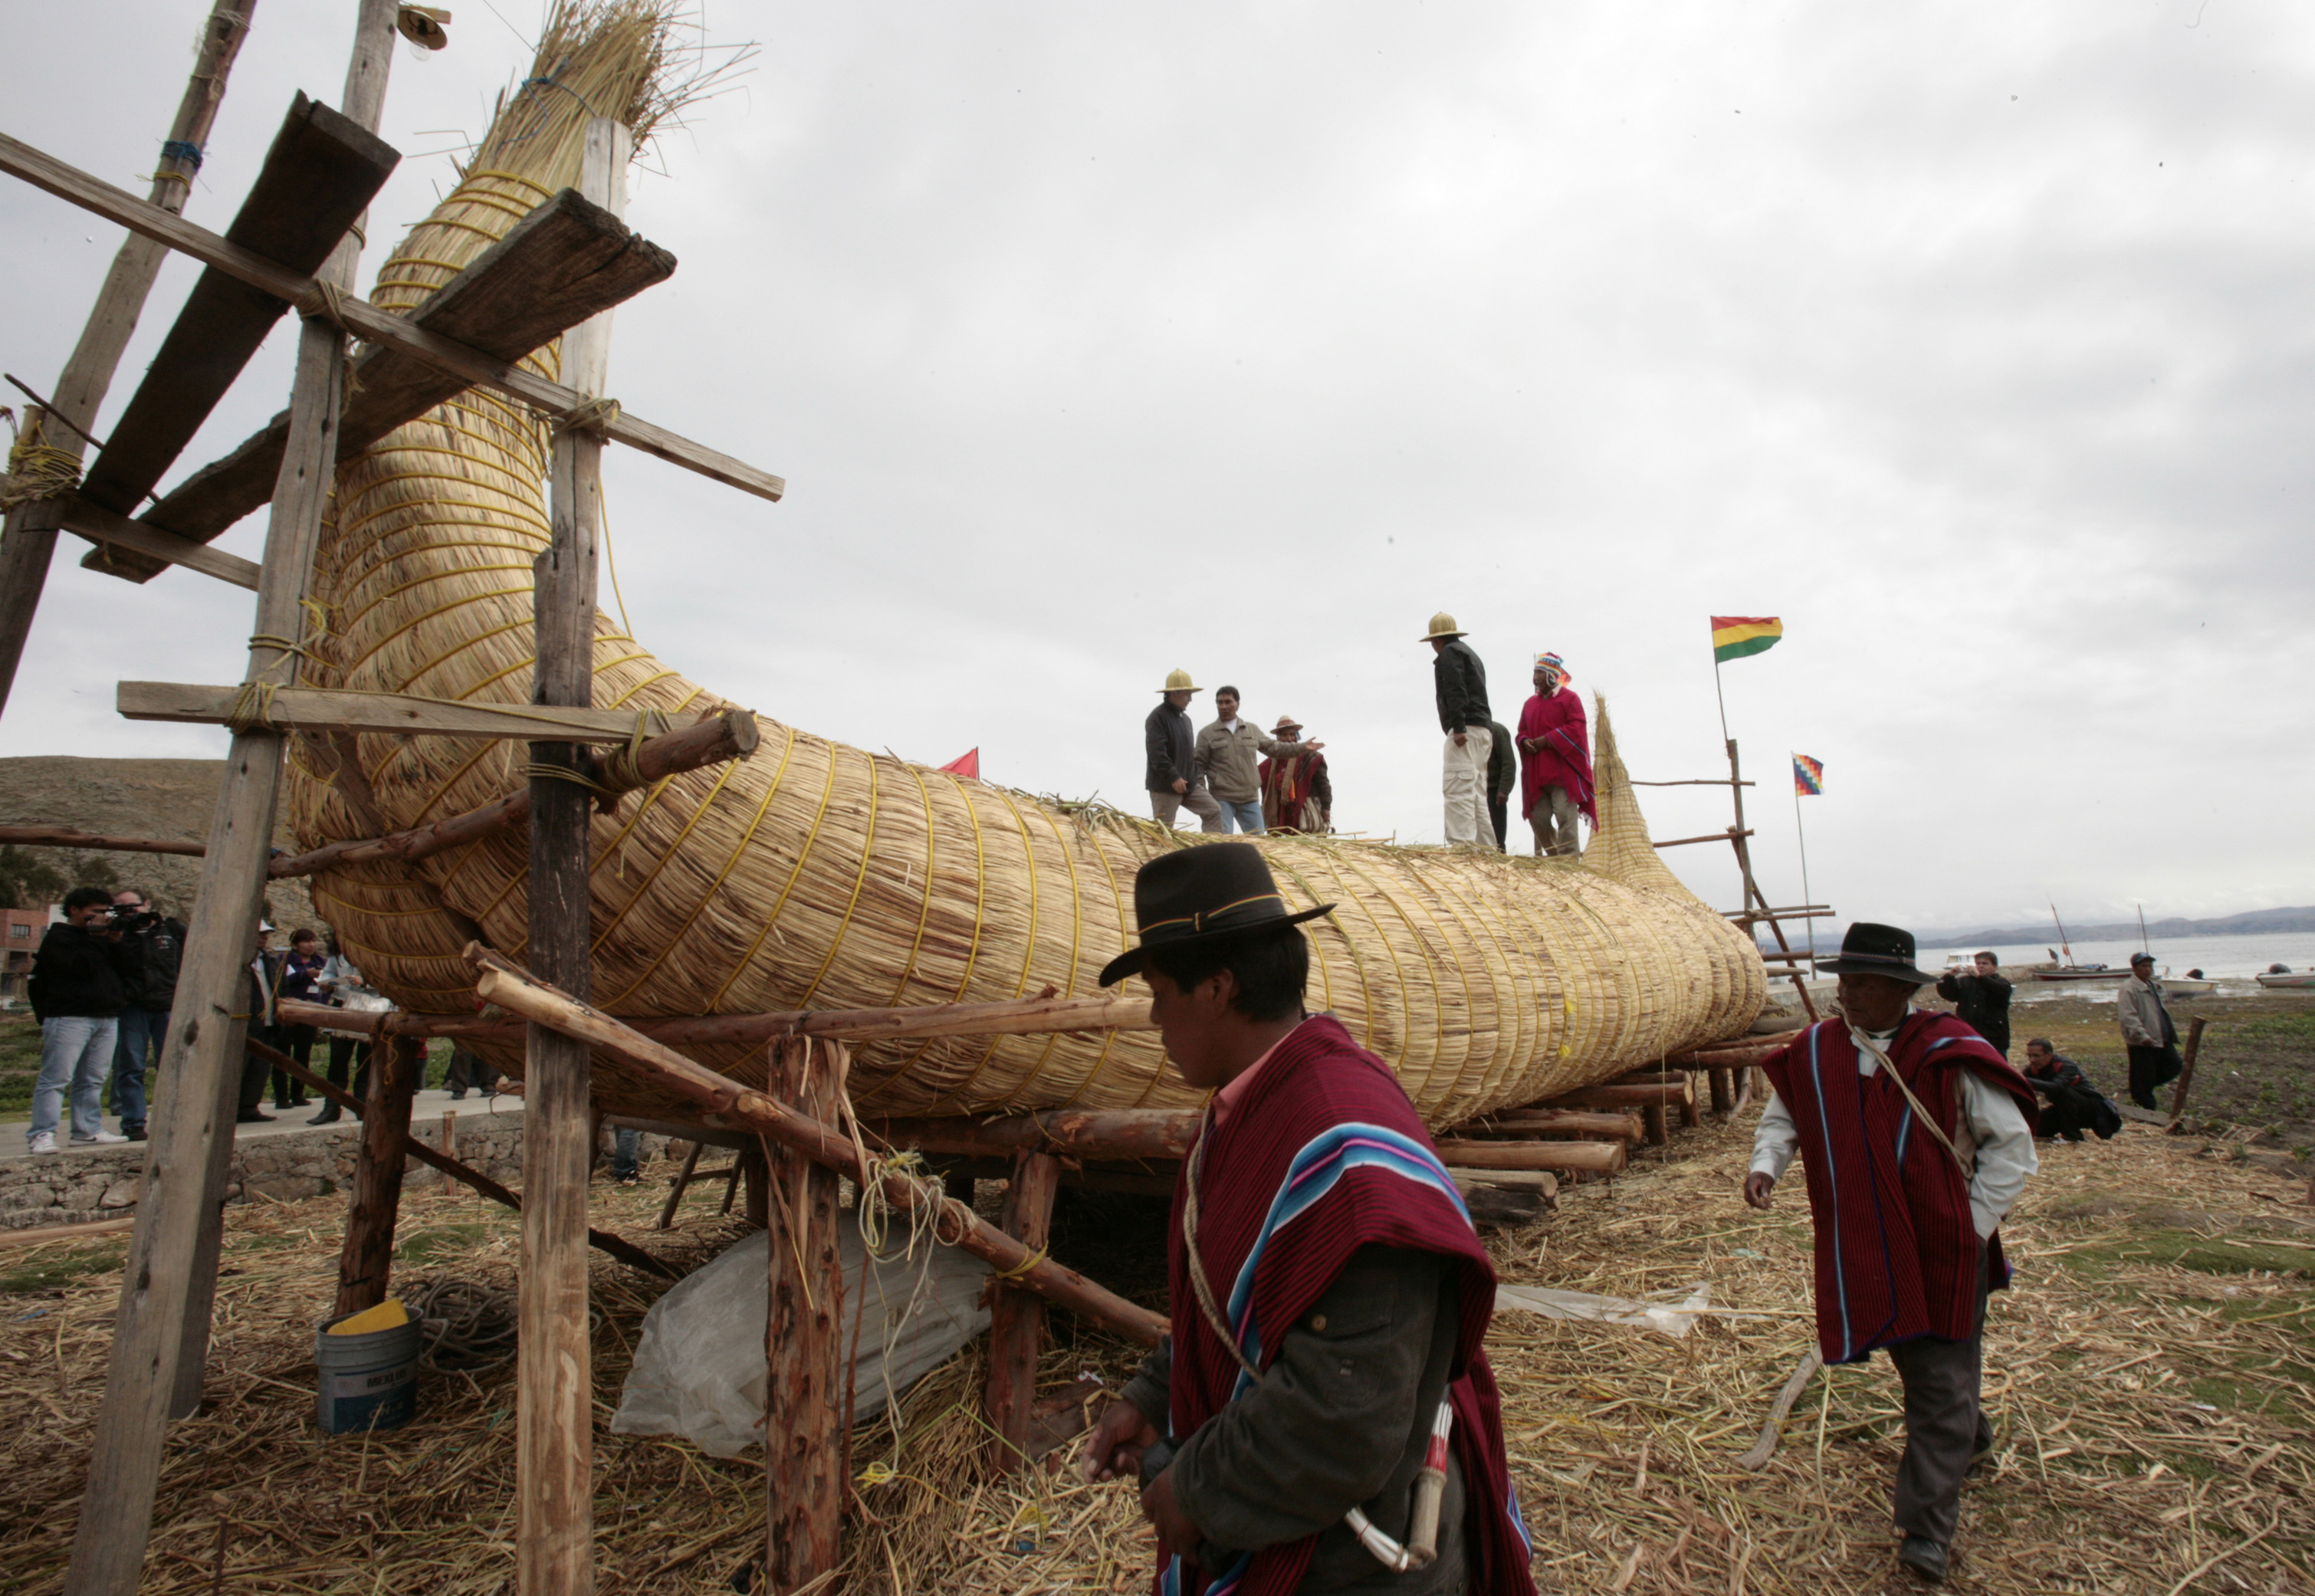 Members of the Limachi family, and others from the community living along the shores of Lake Titacaca, inspect a reed boat in Suriqui island on Lake Titicaca, some 50 miles northwest of La Paz, Mexico on December 2, 2012. The boat, sponsored by Bolivia's government, was built for the summer solstice.